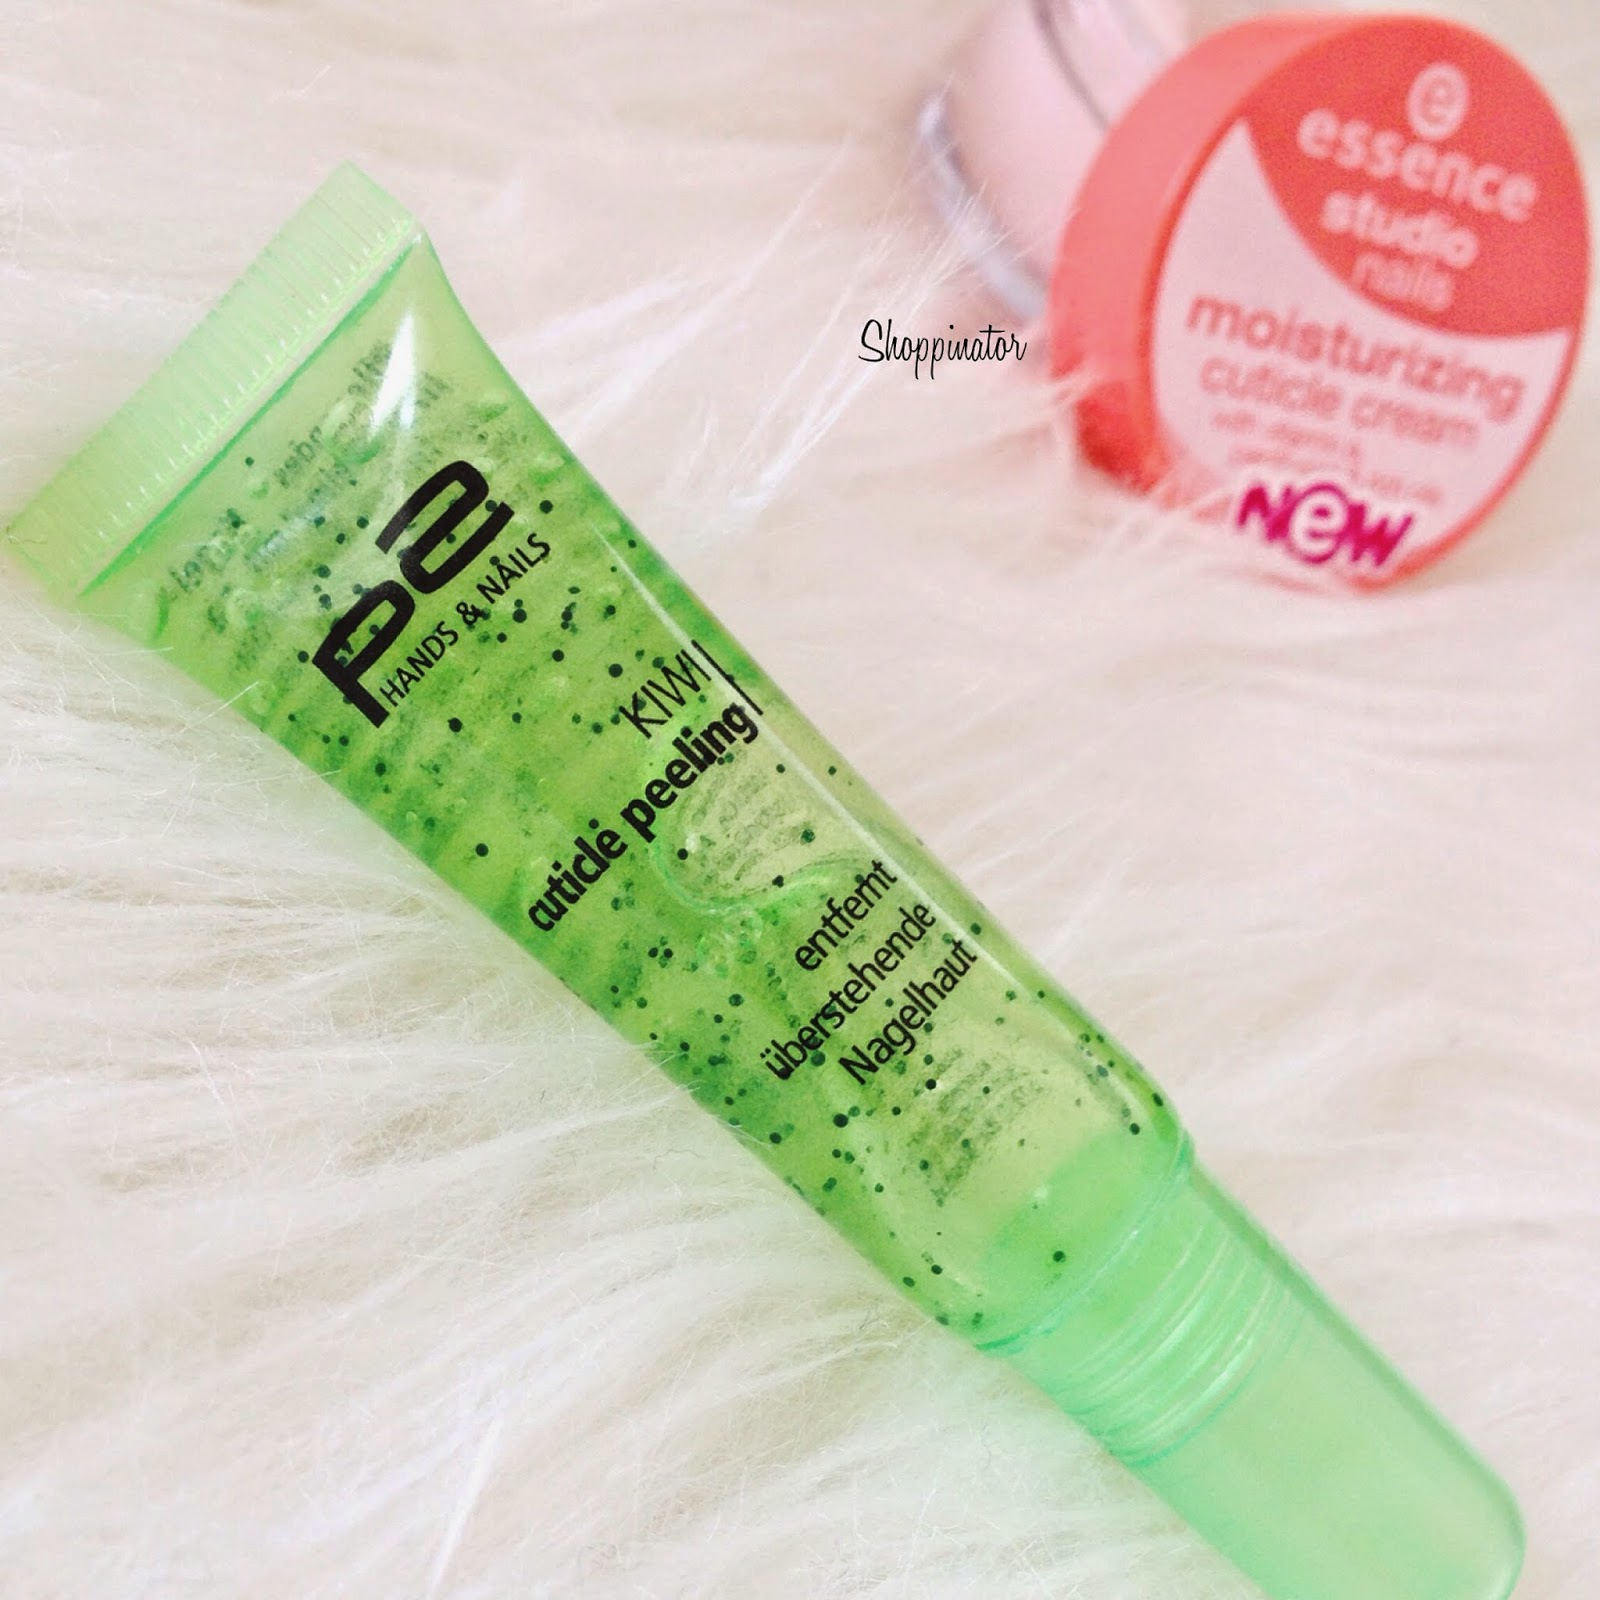 P2 'Kiwi Cuticle Peeling' – Review